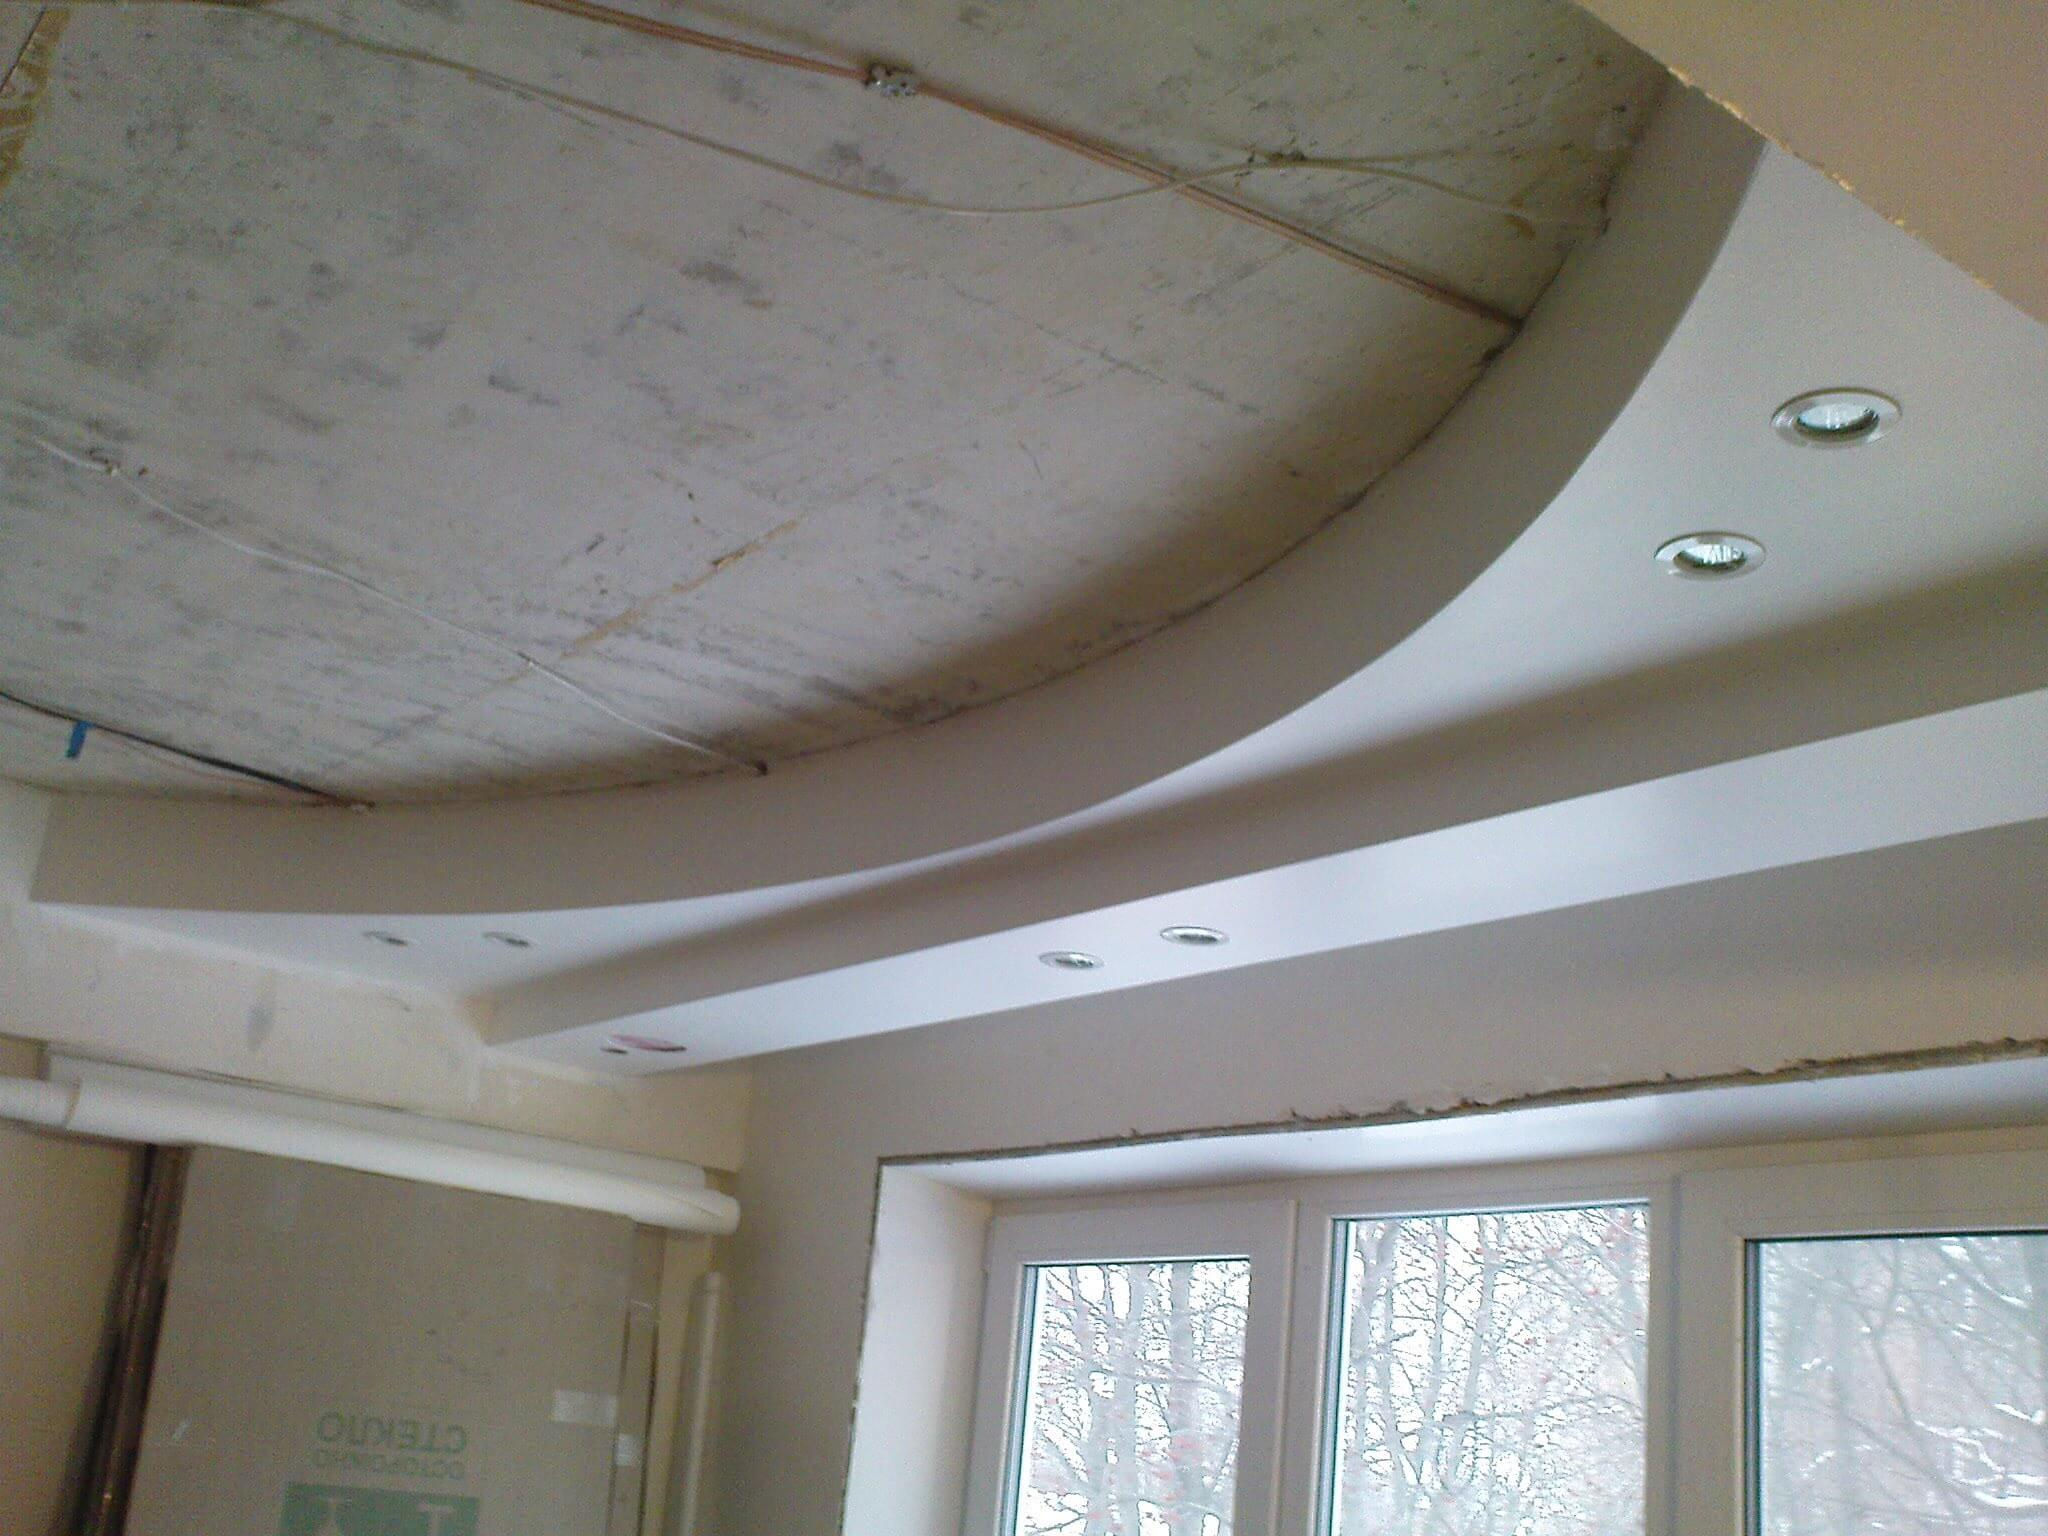 The process of multilevel plasterboard ceiling creation before puttying